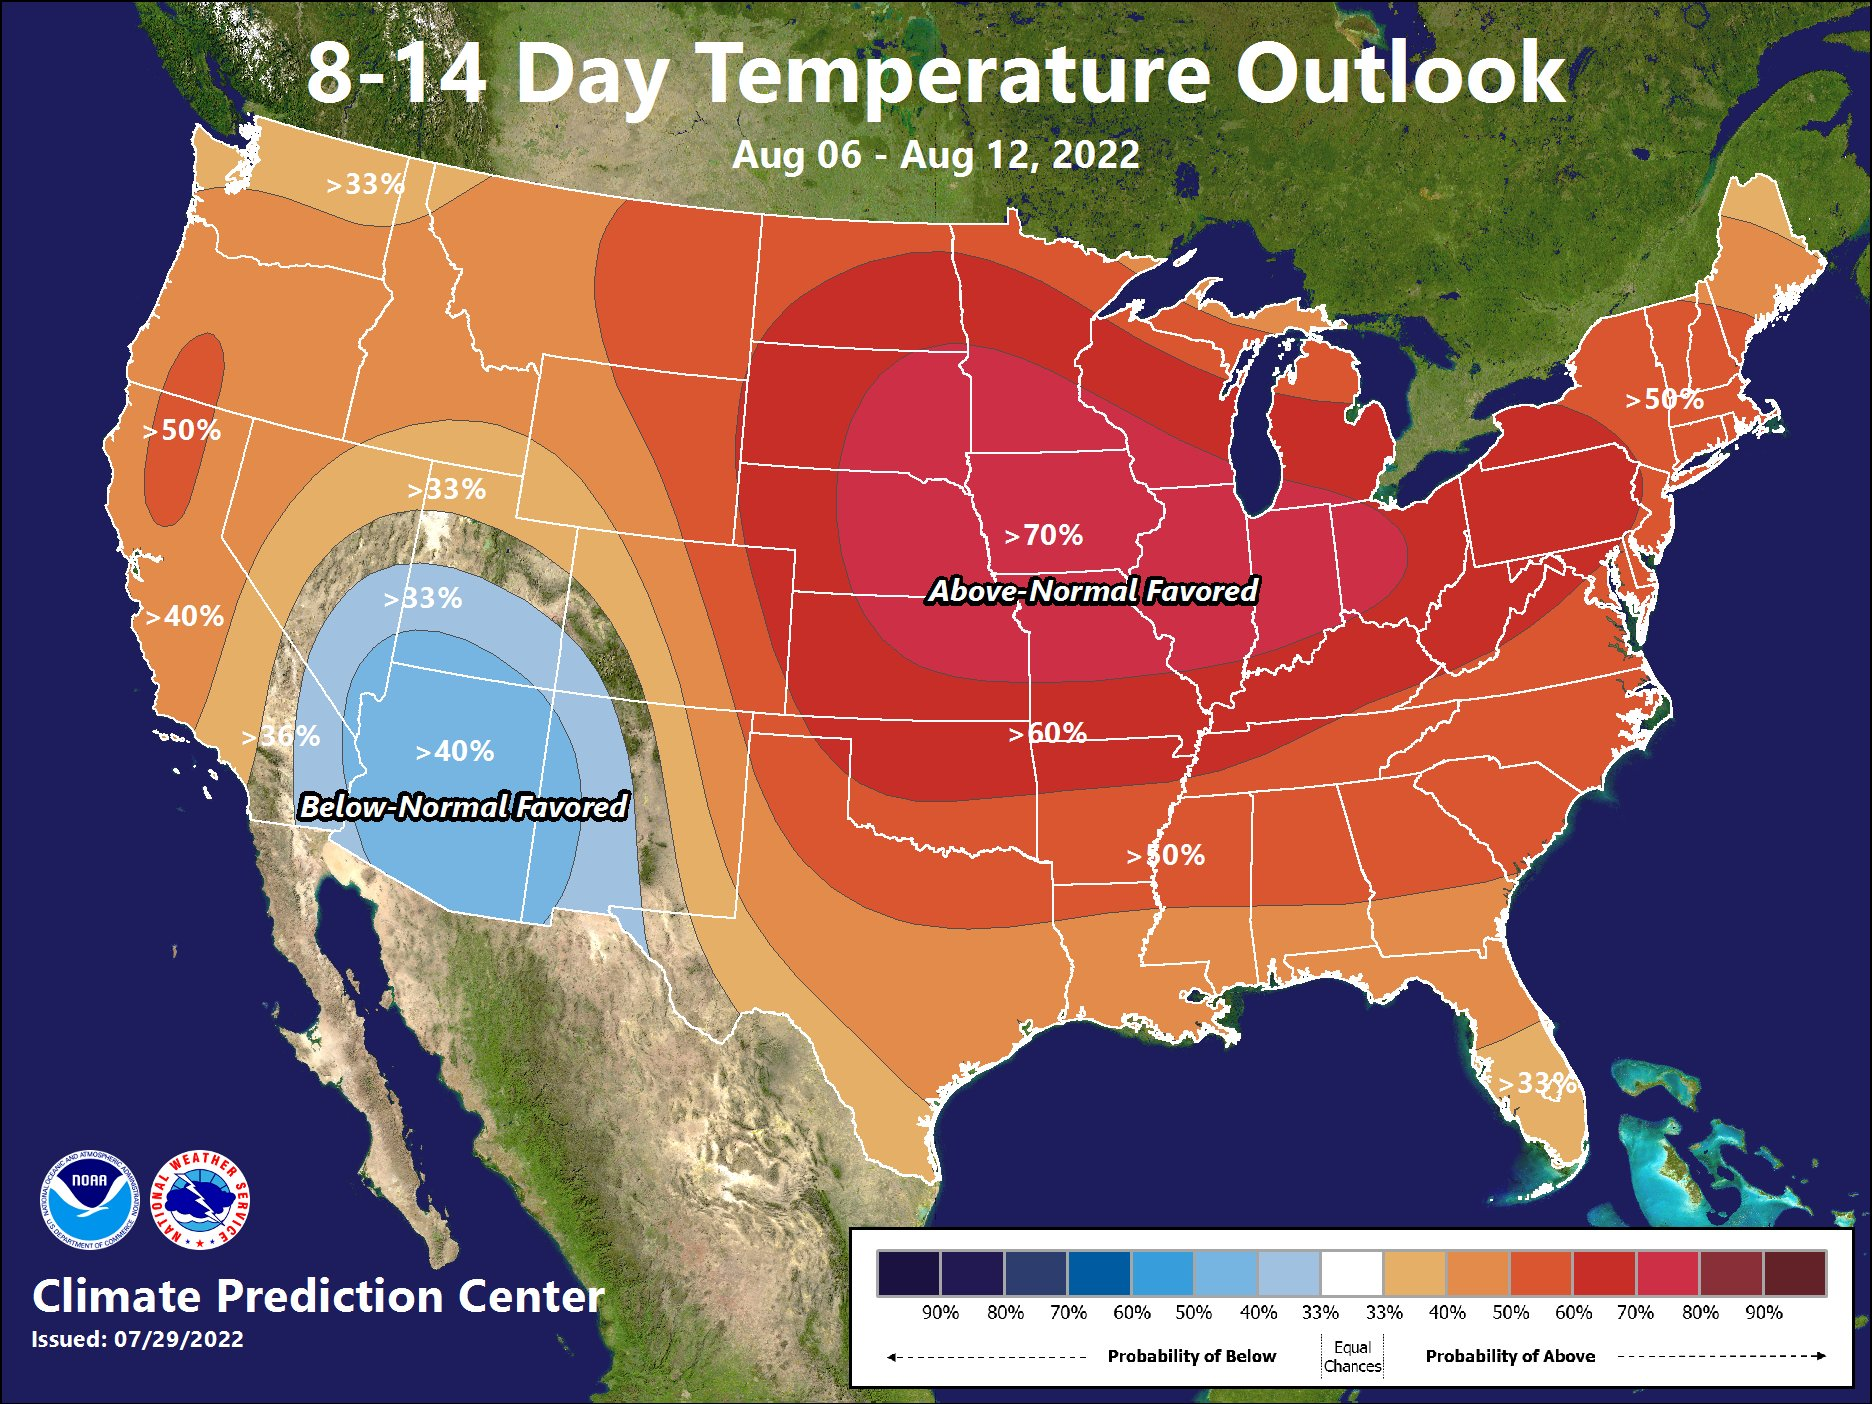 8 - 14 Day Temperature Outlook